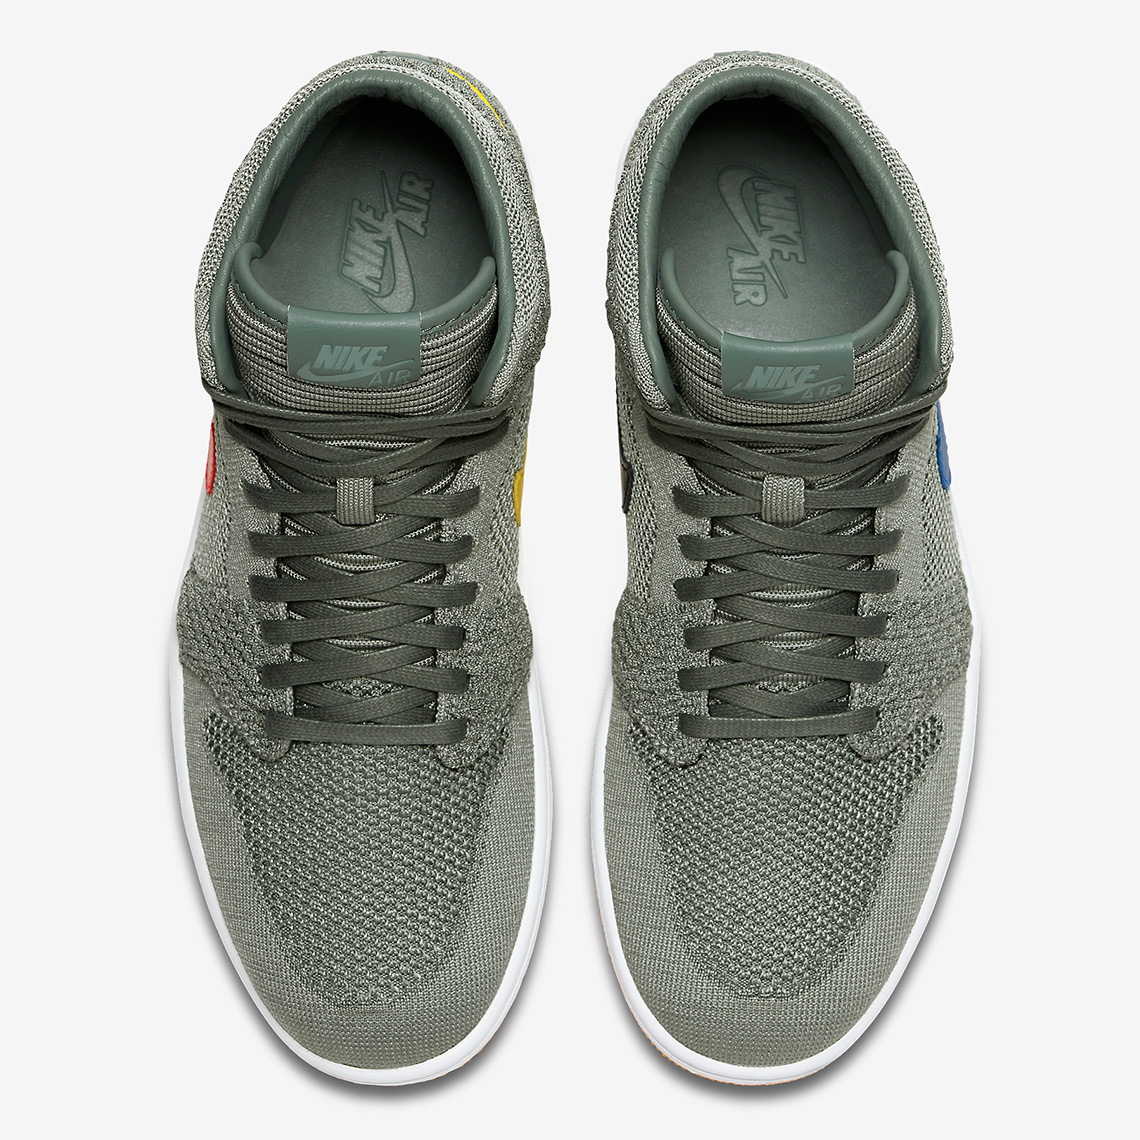 sports shoes 80aea 98c72 The shark teeth design on the midsole that the Retro 5 is famous for is  also bronze.Thunder And Lightning Strikes SoleFly In Upcoming Jordan  Trunner LX High ...